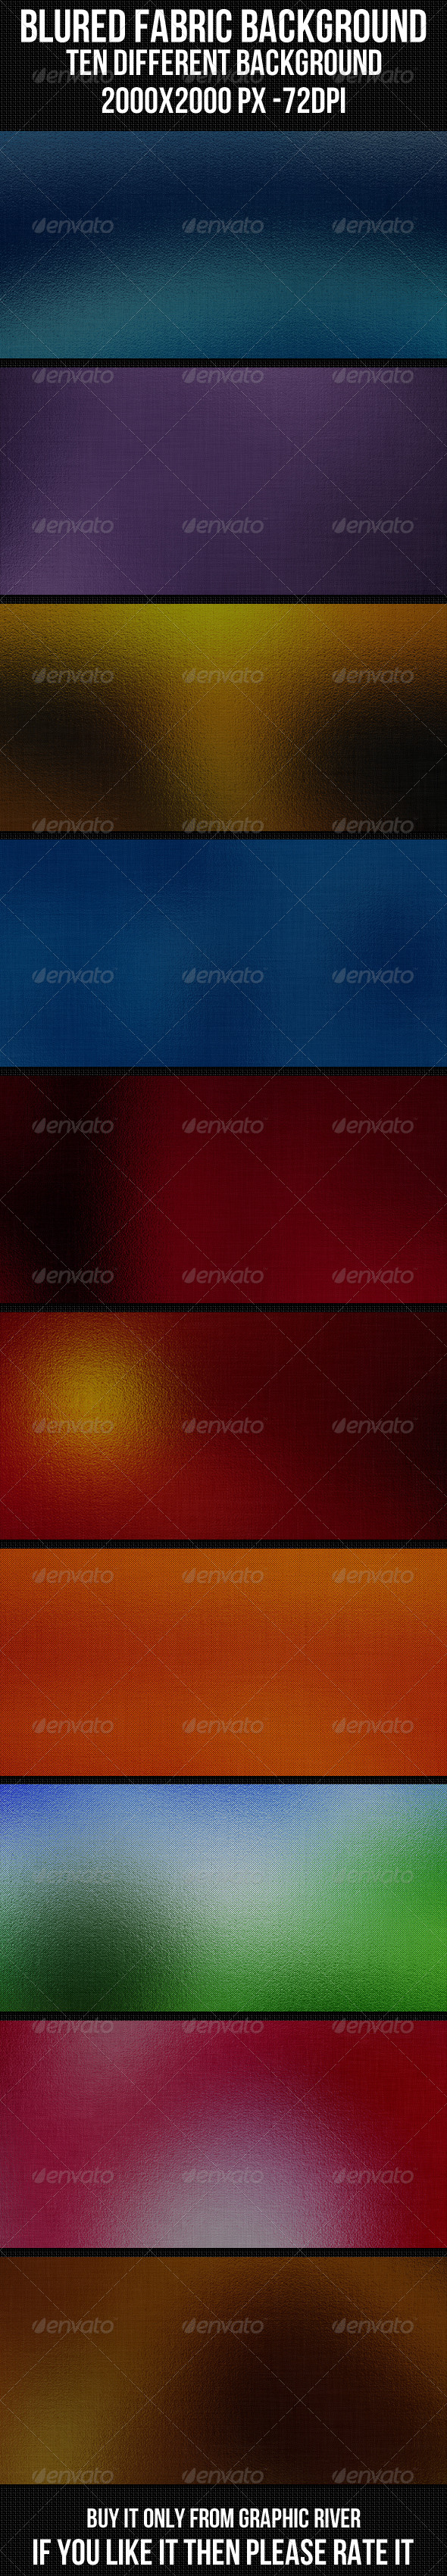 GraphicRiver Blured Fabric Background Set 4344093